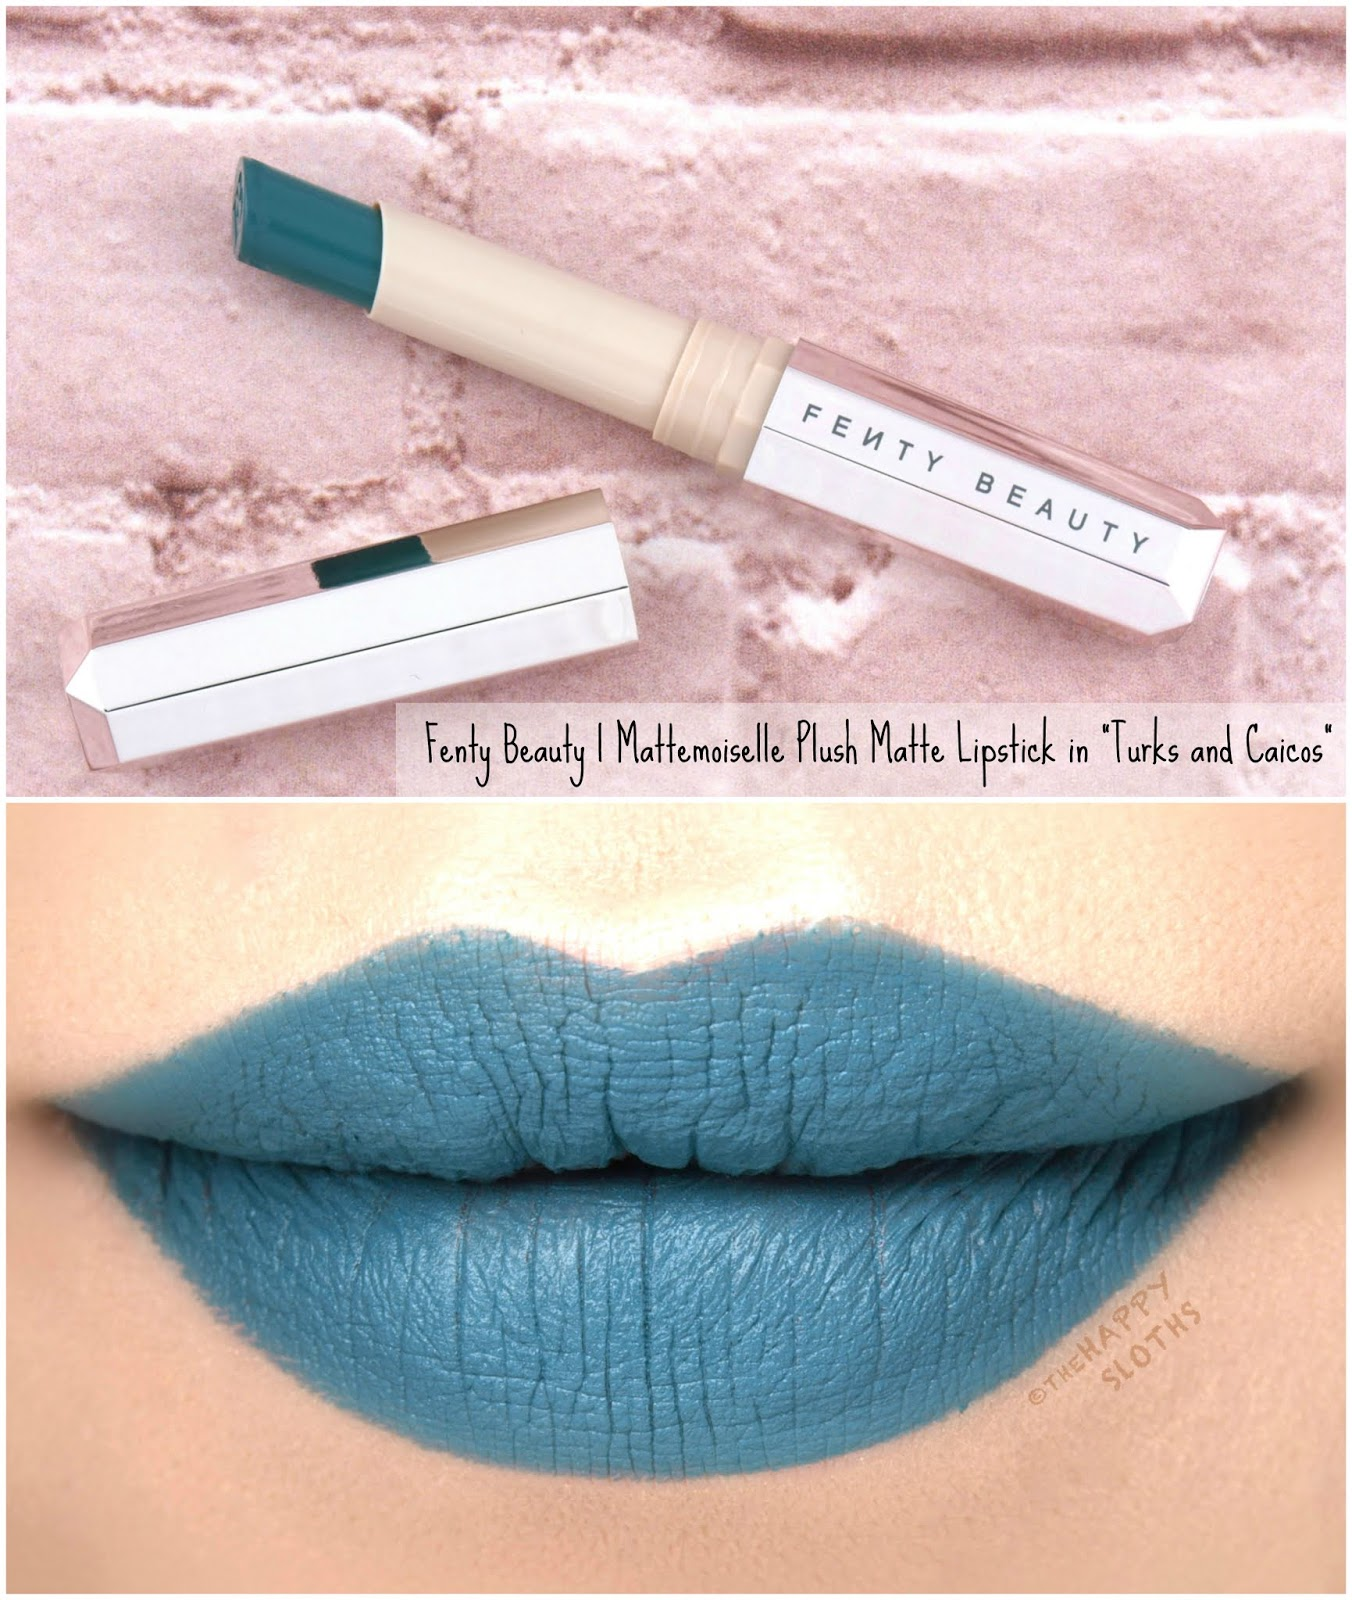 "Fenty Beauty by Rihanna | Mattemoiselle Plush Matte Lipstick in ""Turks and Caicos"": Review and Swatches"